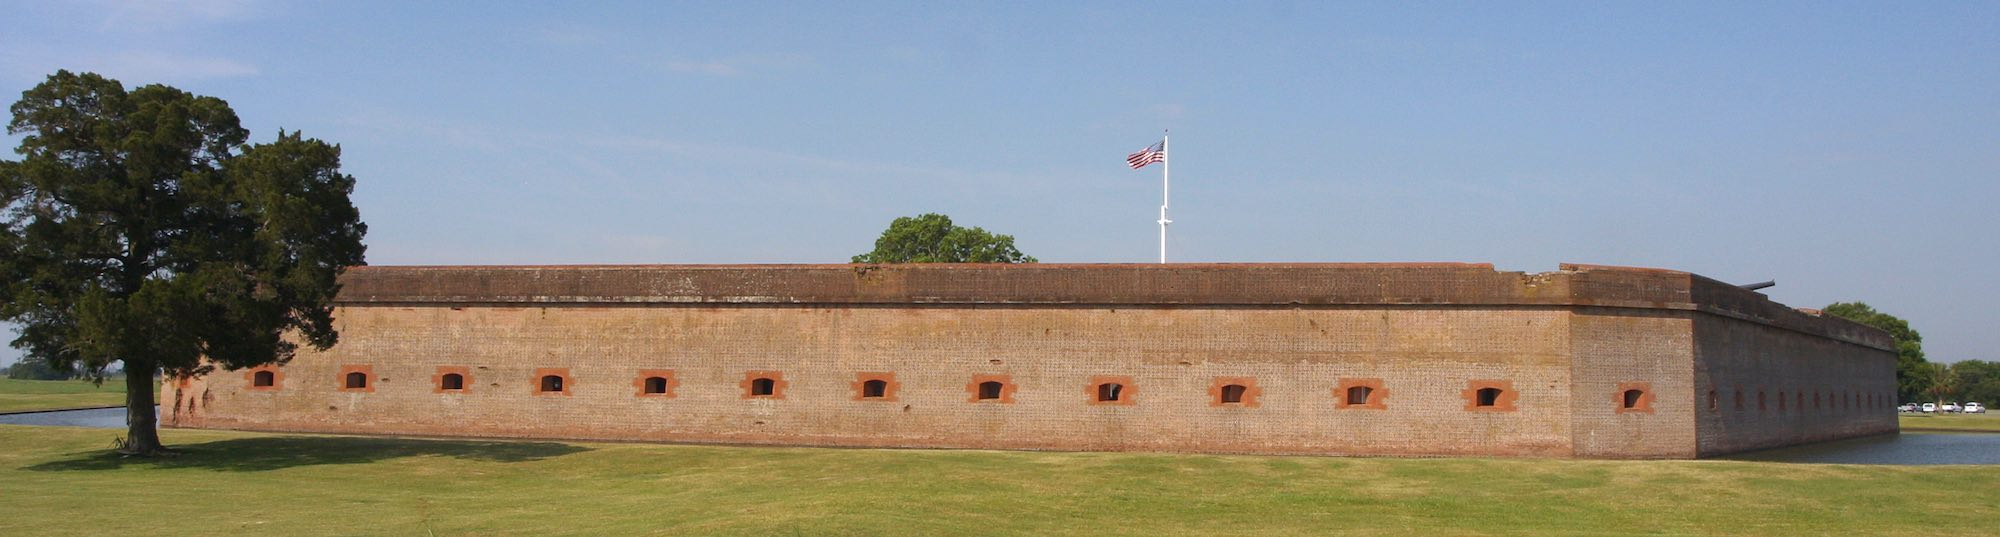 Outer walls of Fort Pulaski National Monument.